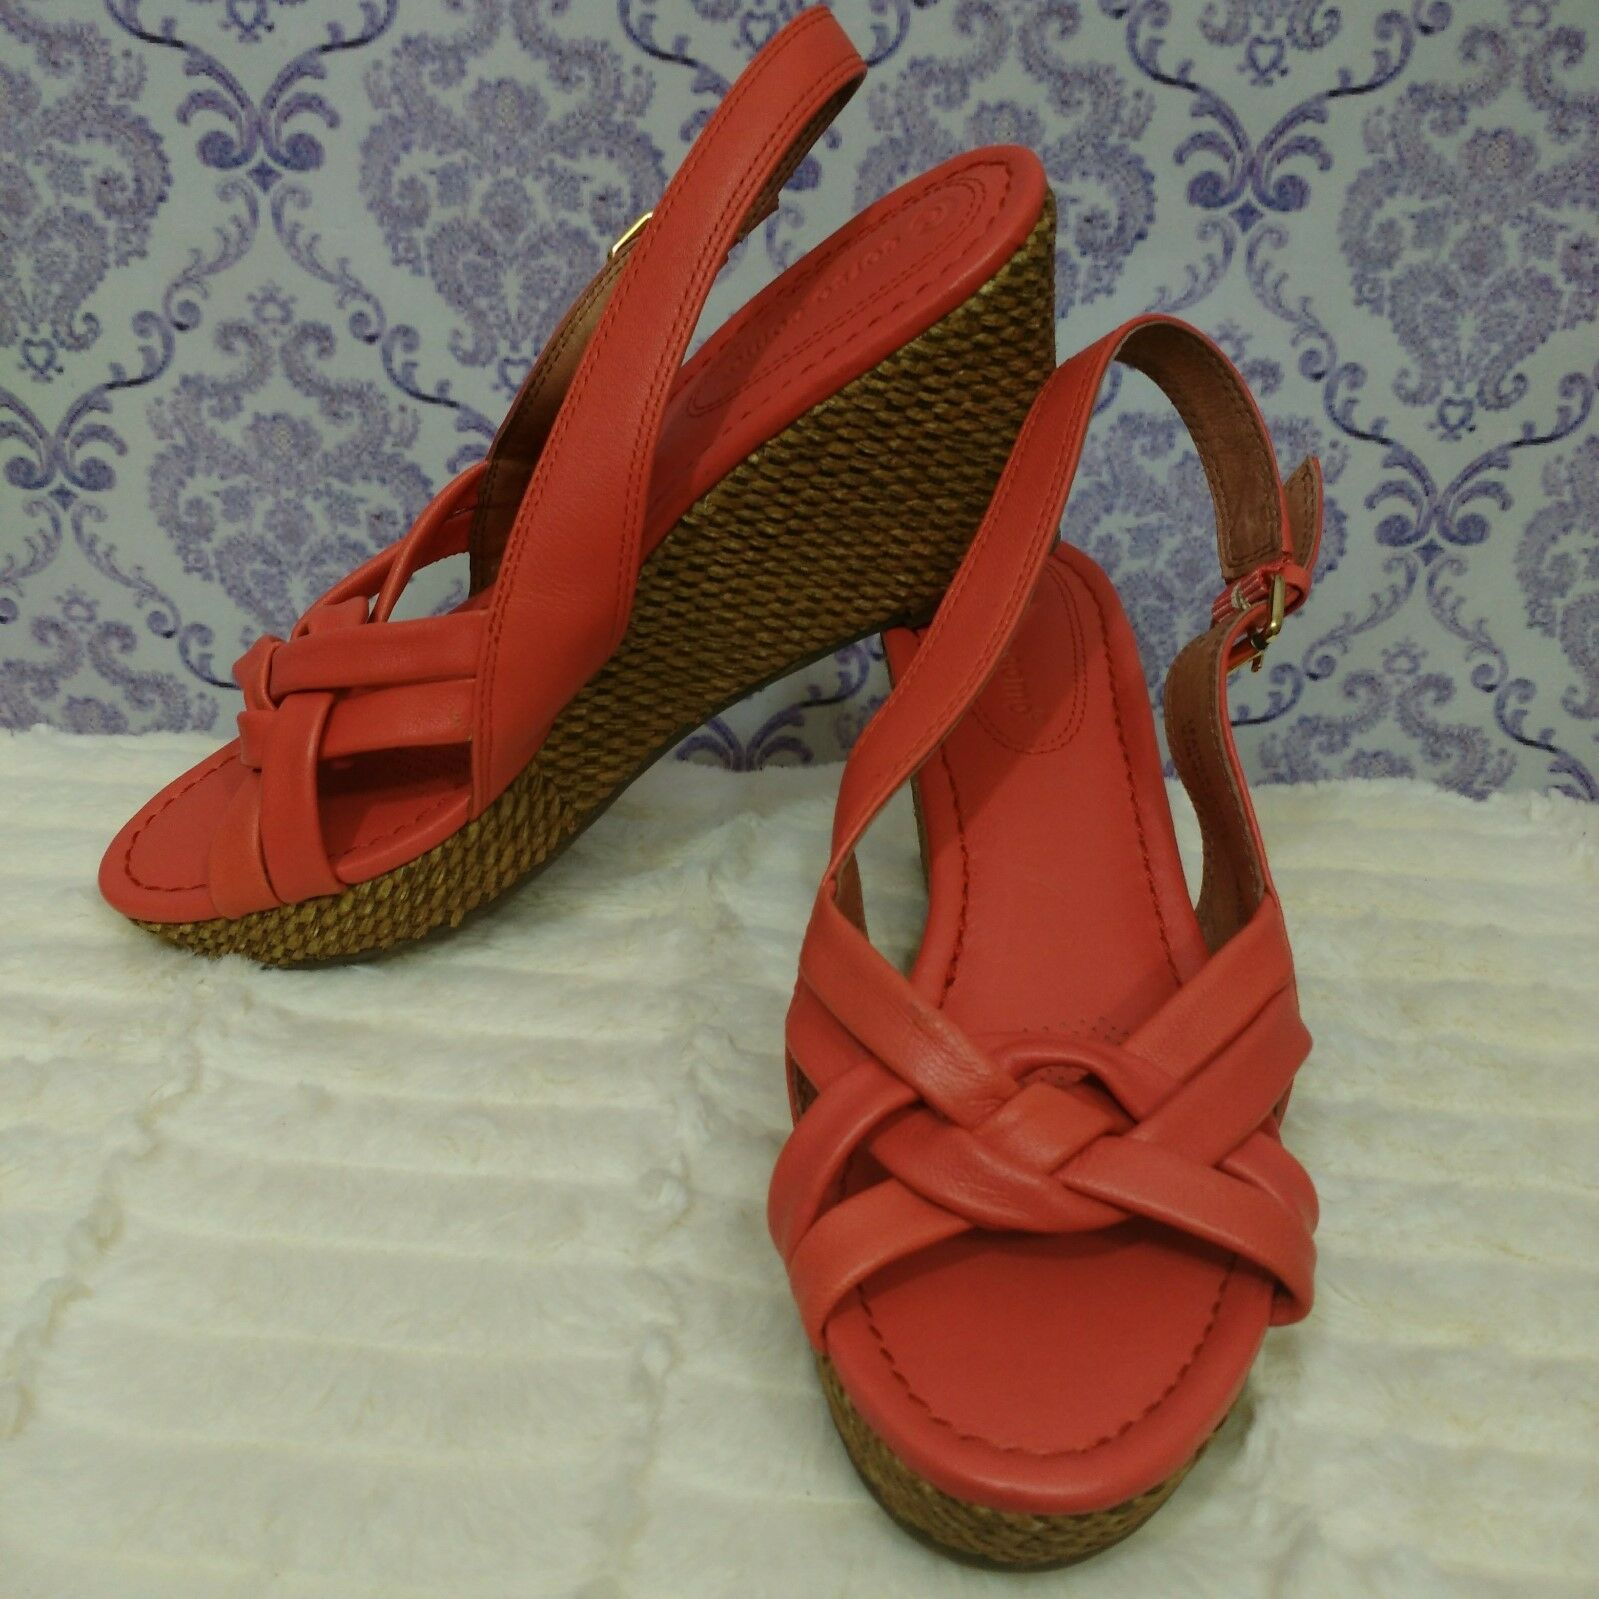 Corso Como Womens Wedge M Slingback Sandals Size 8 M Wedge Coral Orange Leather Heels 7177c7